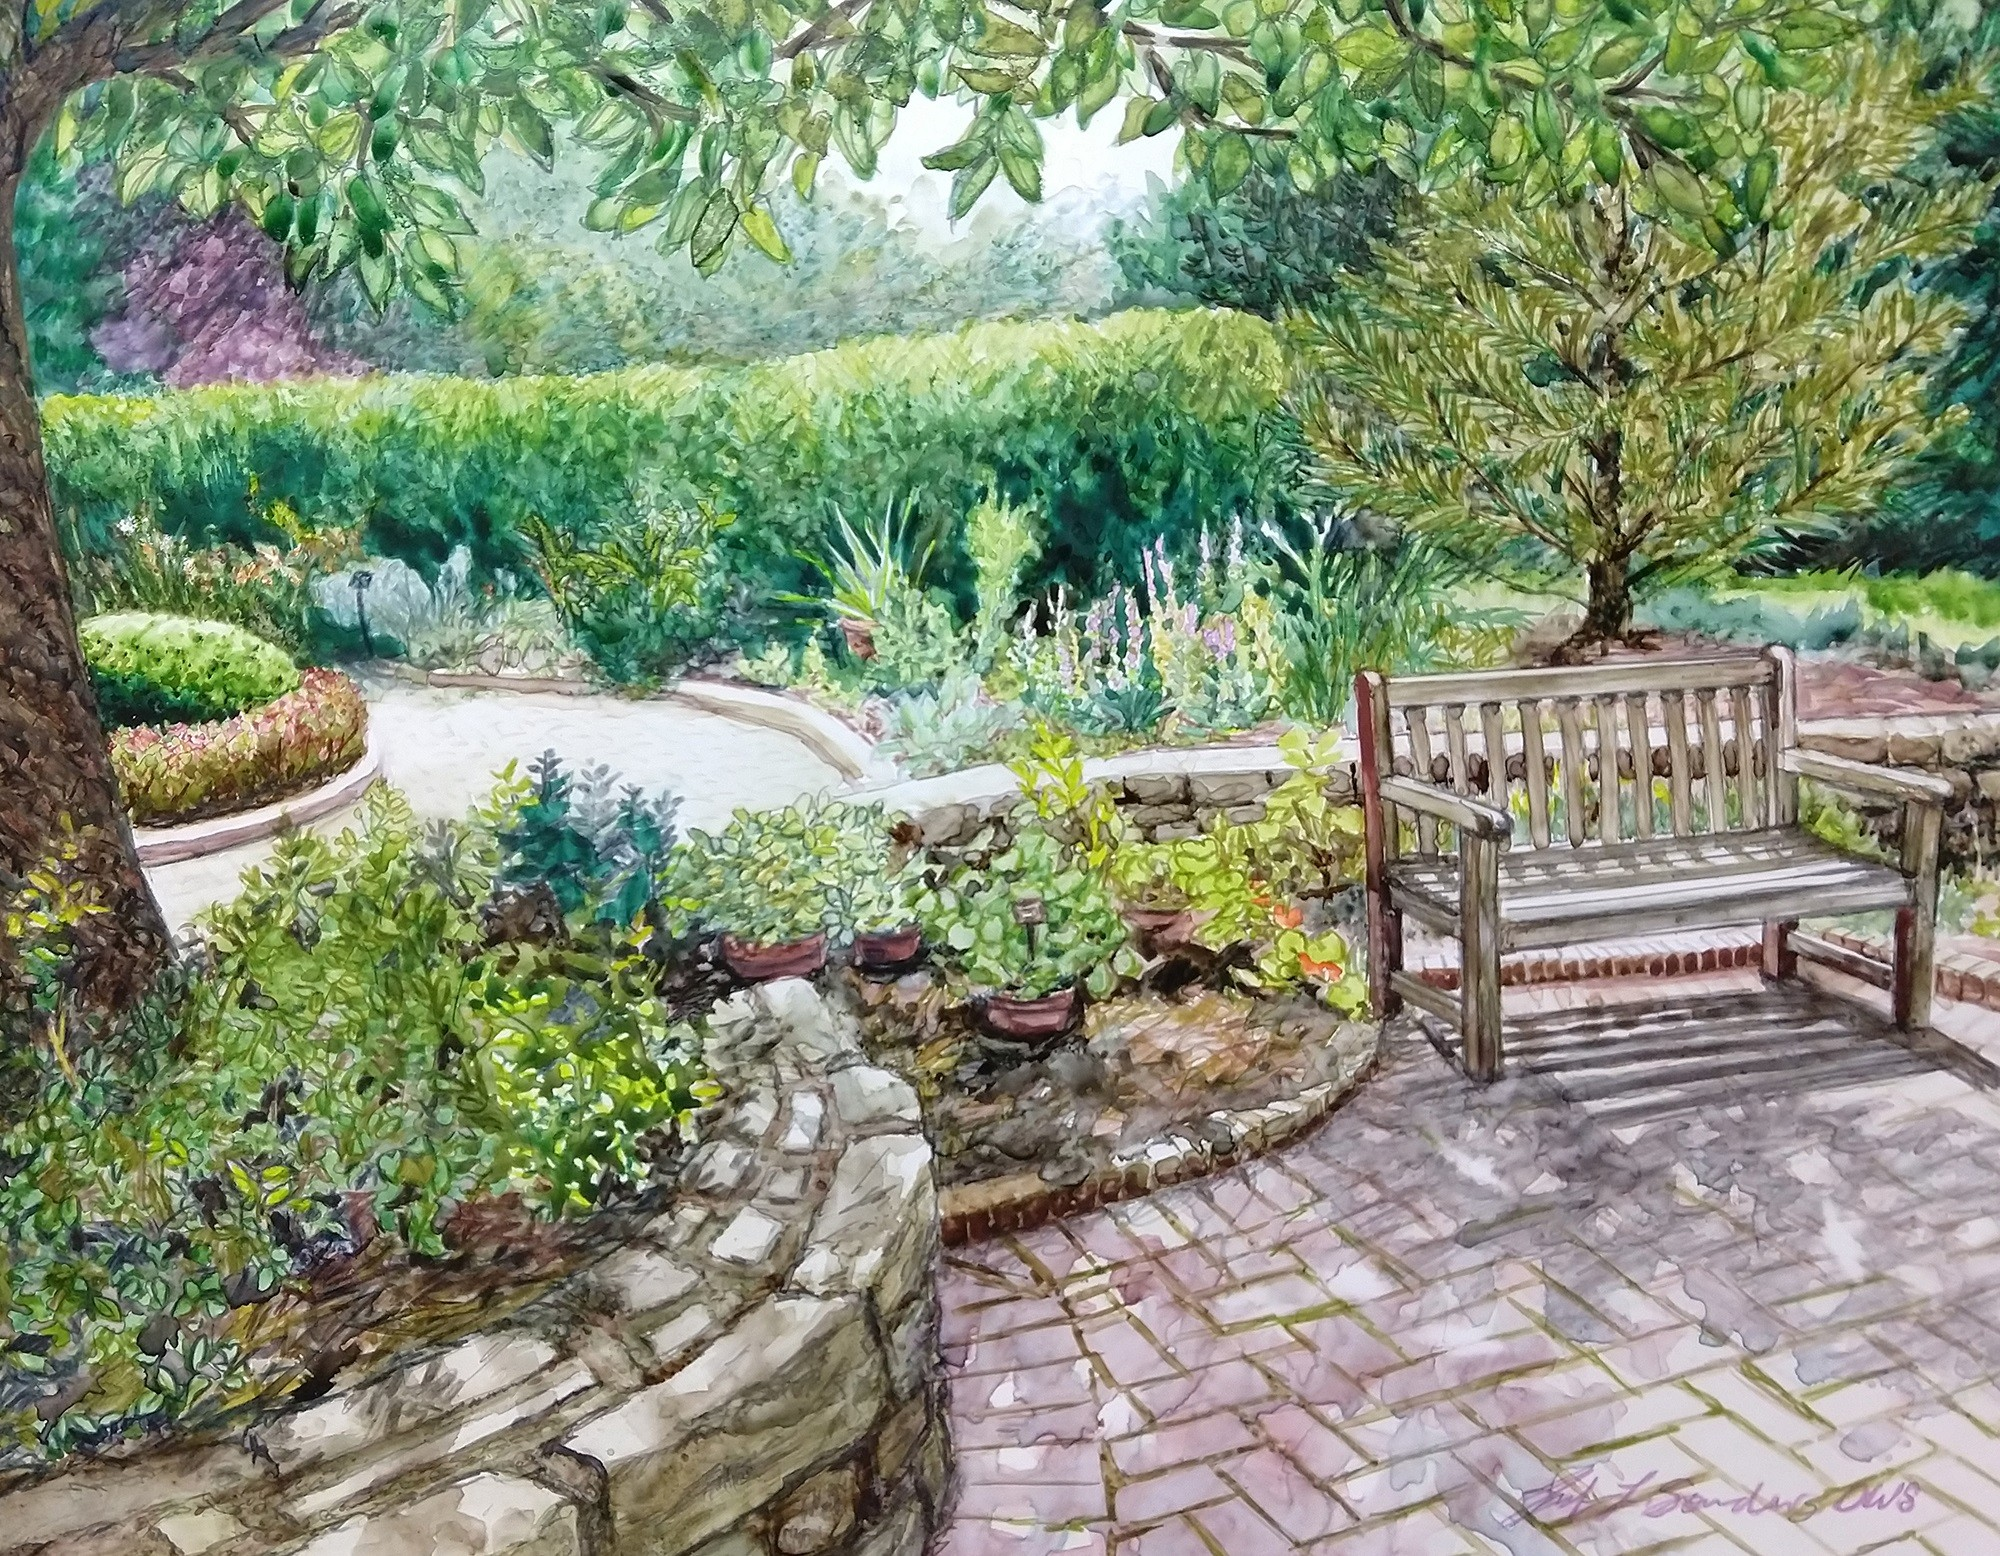 """Jennifer Sowders' watercolor, """"Herb Gardens,"""" will be among the pieces featured in """"In the Gardens,"""" a Toledo Federation of Art Societies Members' Exclusive Juried Exhibition, which will run April 27-June 30 at Schedel Arboretum & Gardens in Elmore. (Submitted photo)"""